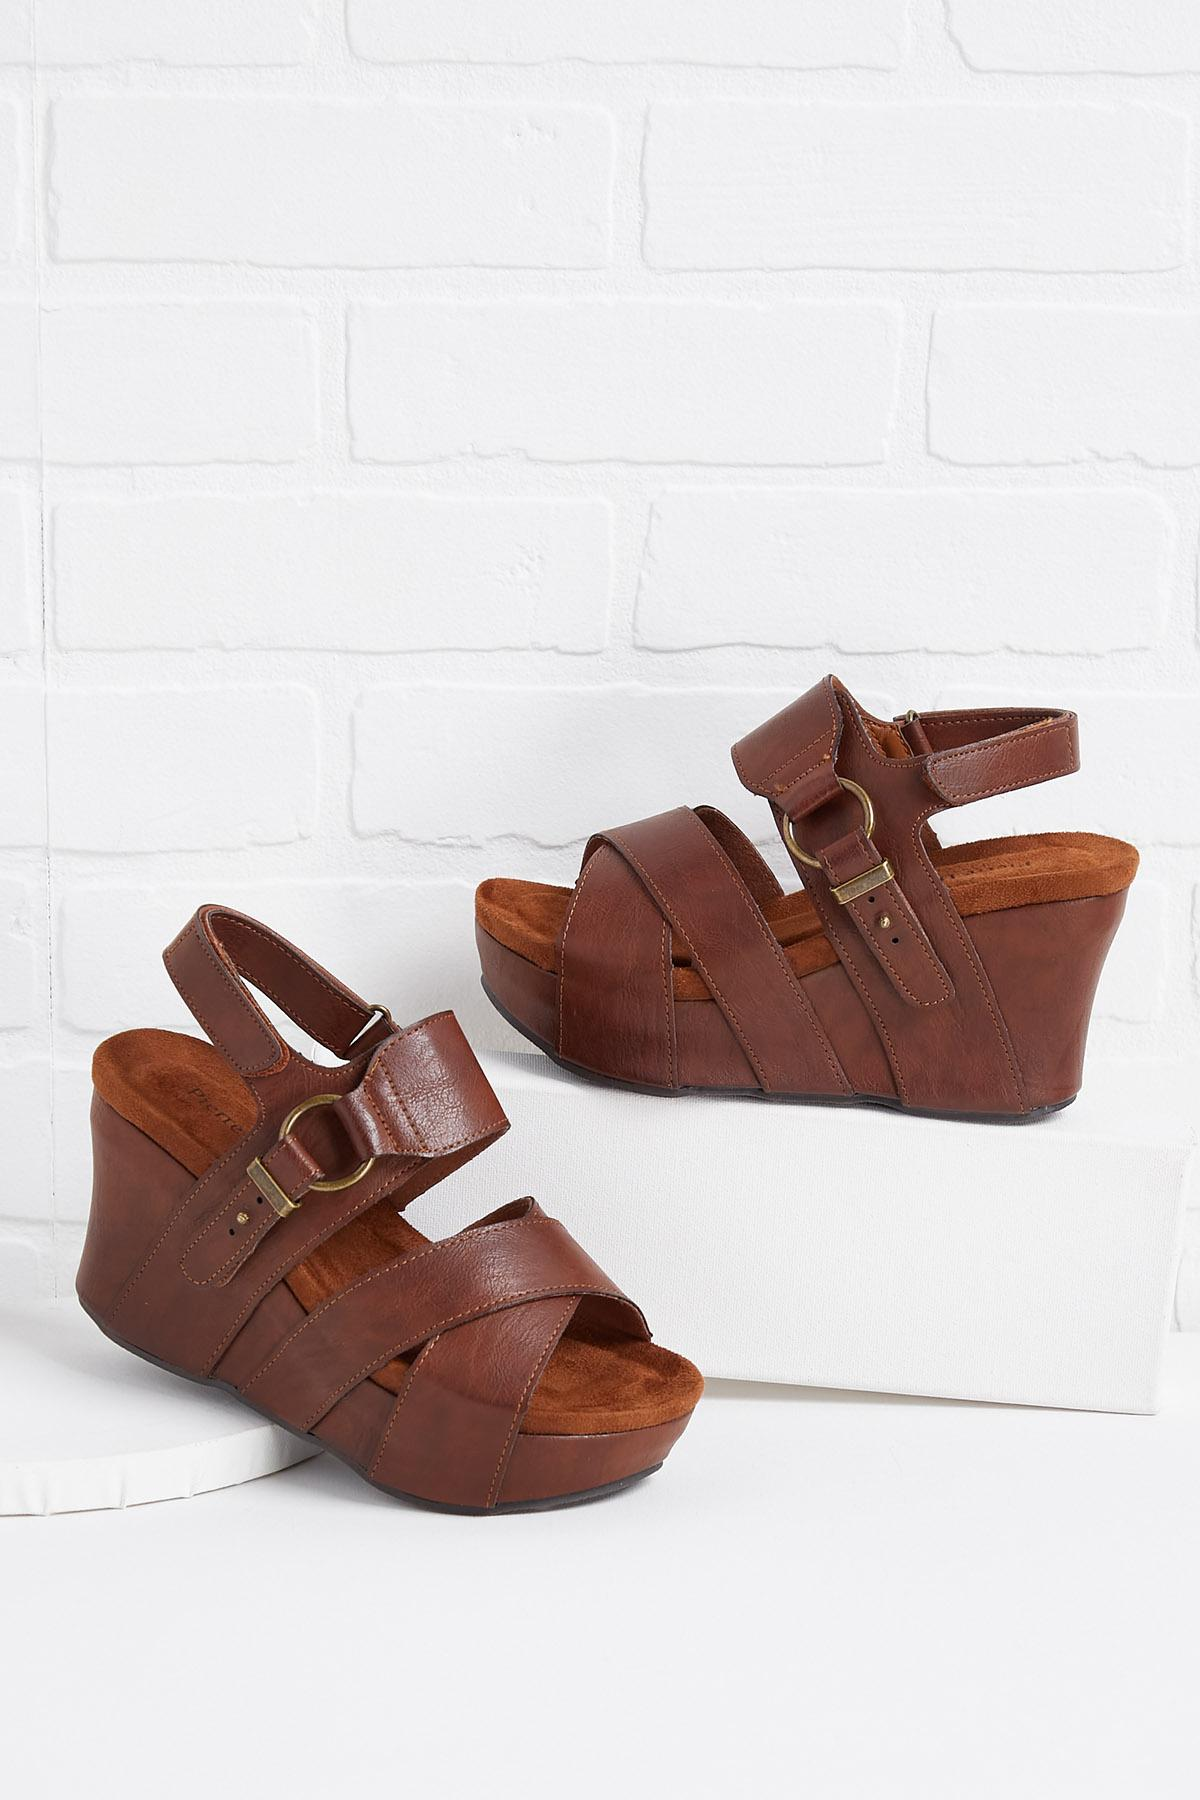 By The Boatyard Wedges